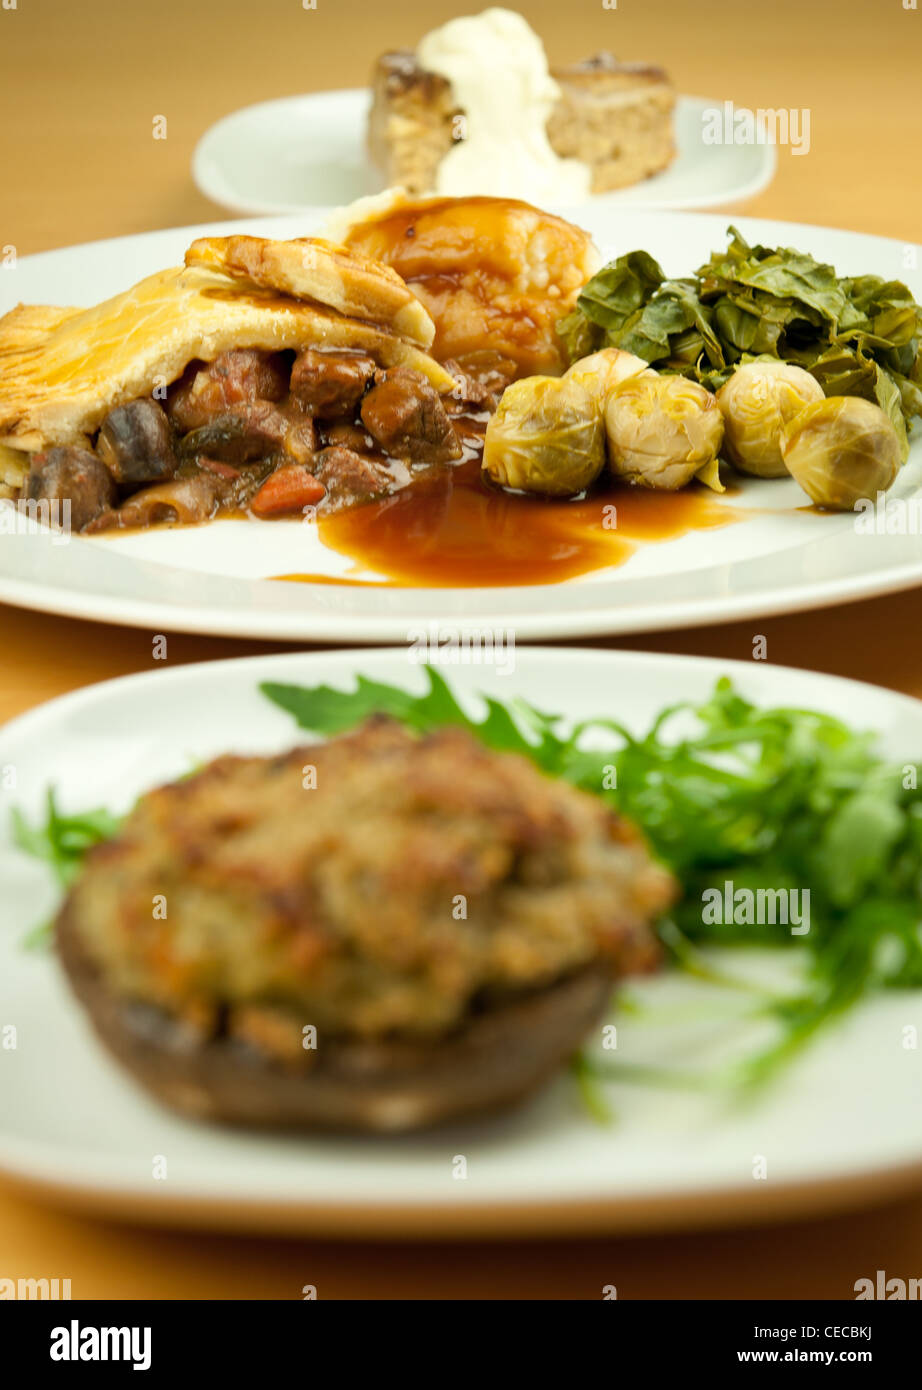 A Home Cooked 3 Course Meal Stock Photo 43298518 Alamy